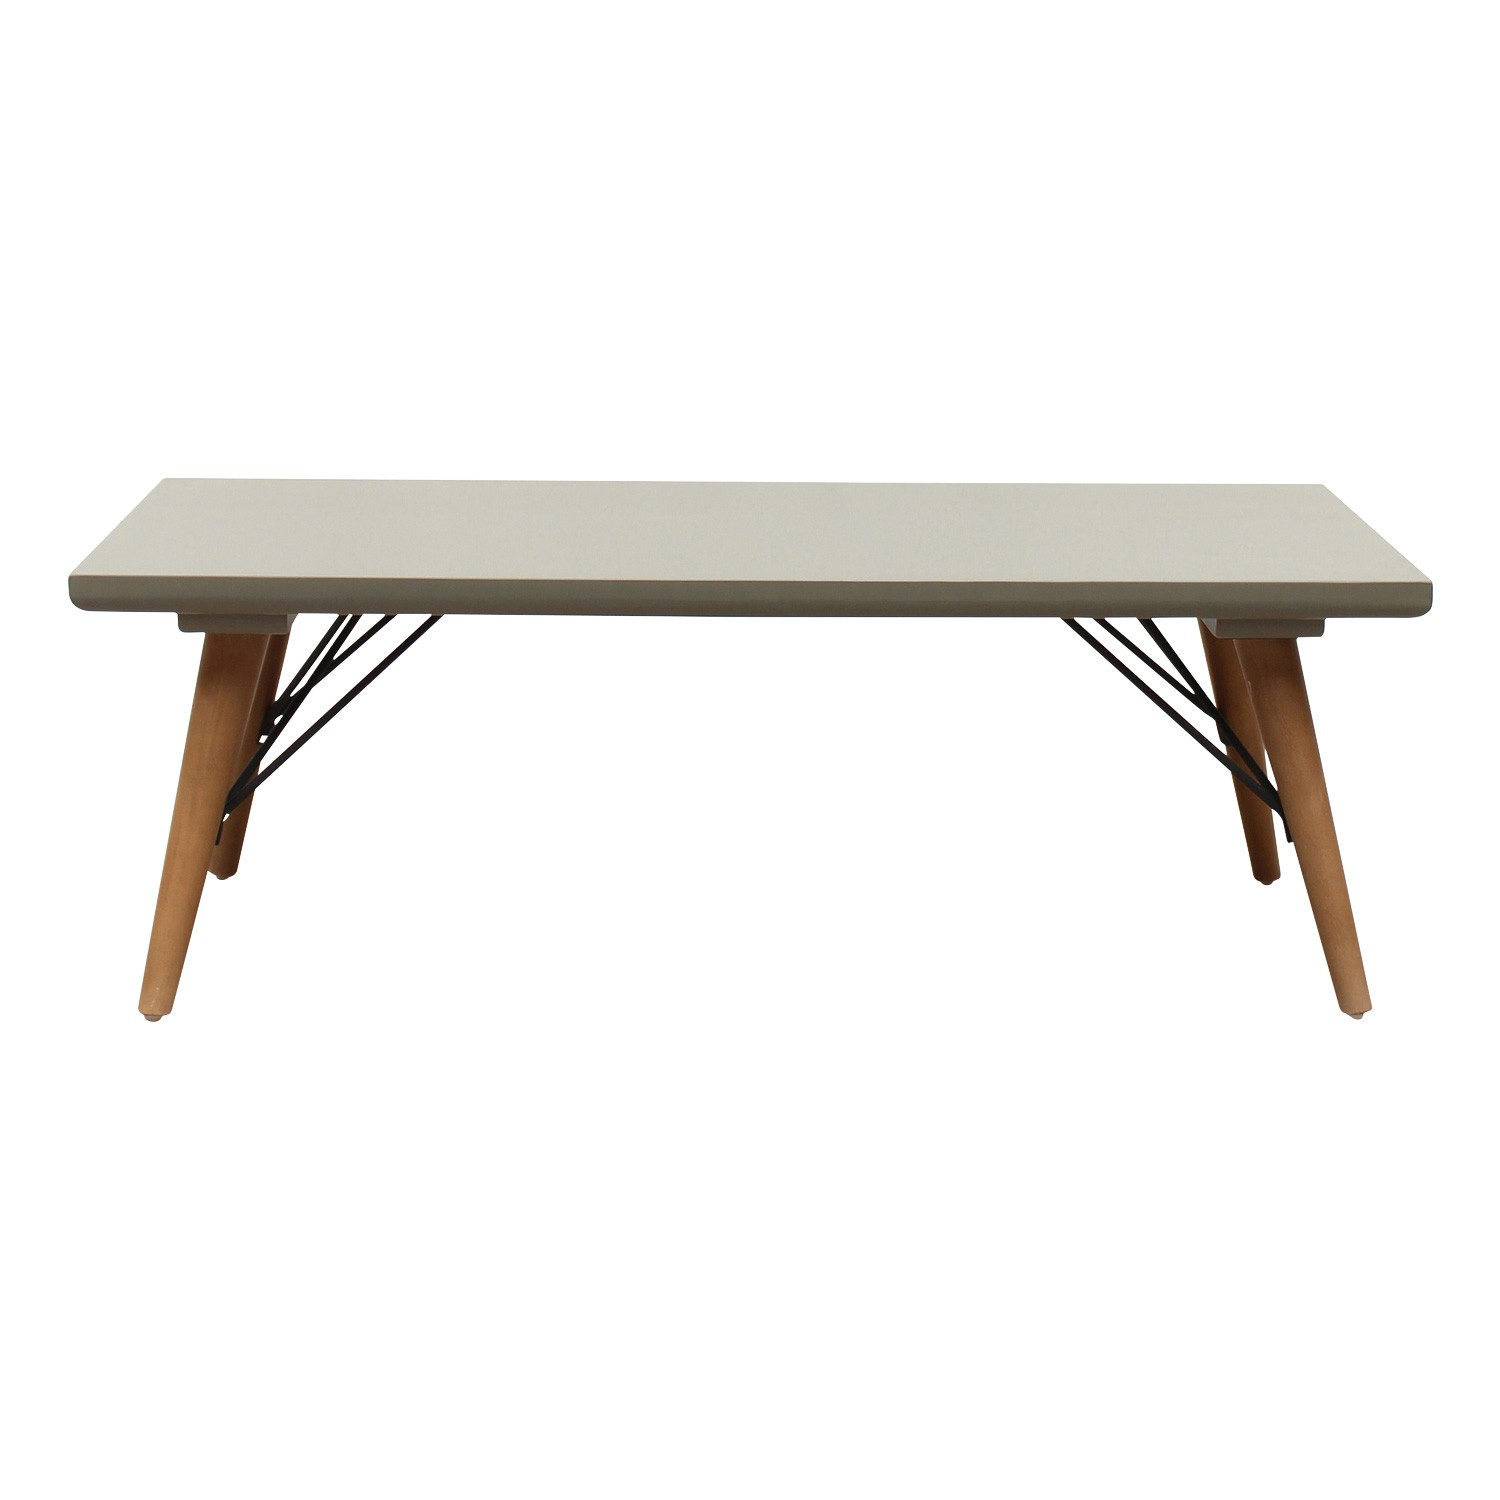 Milton Wooden Coffee Table, 120cm